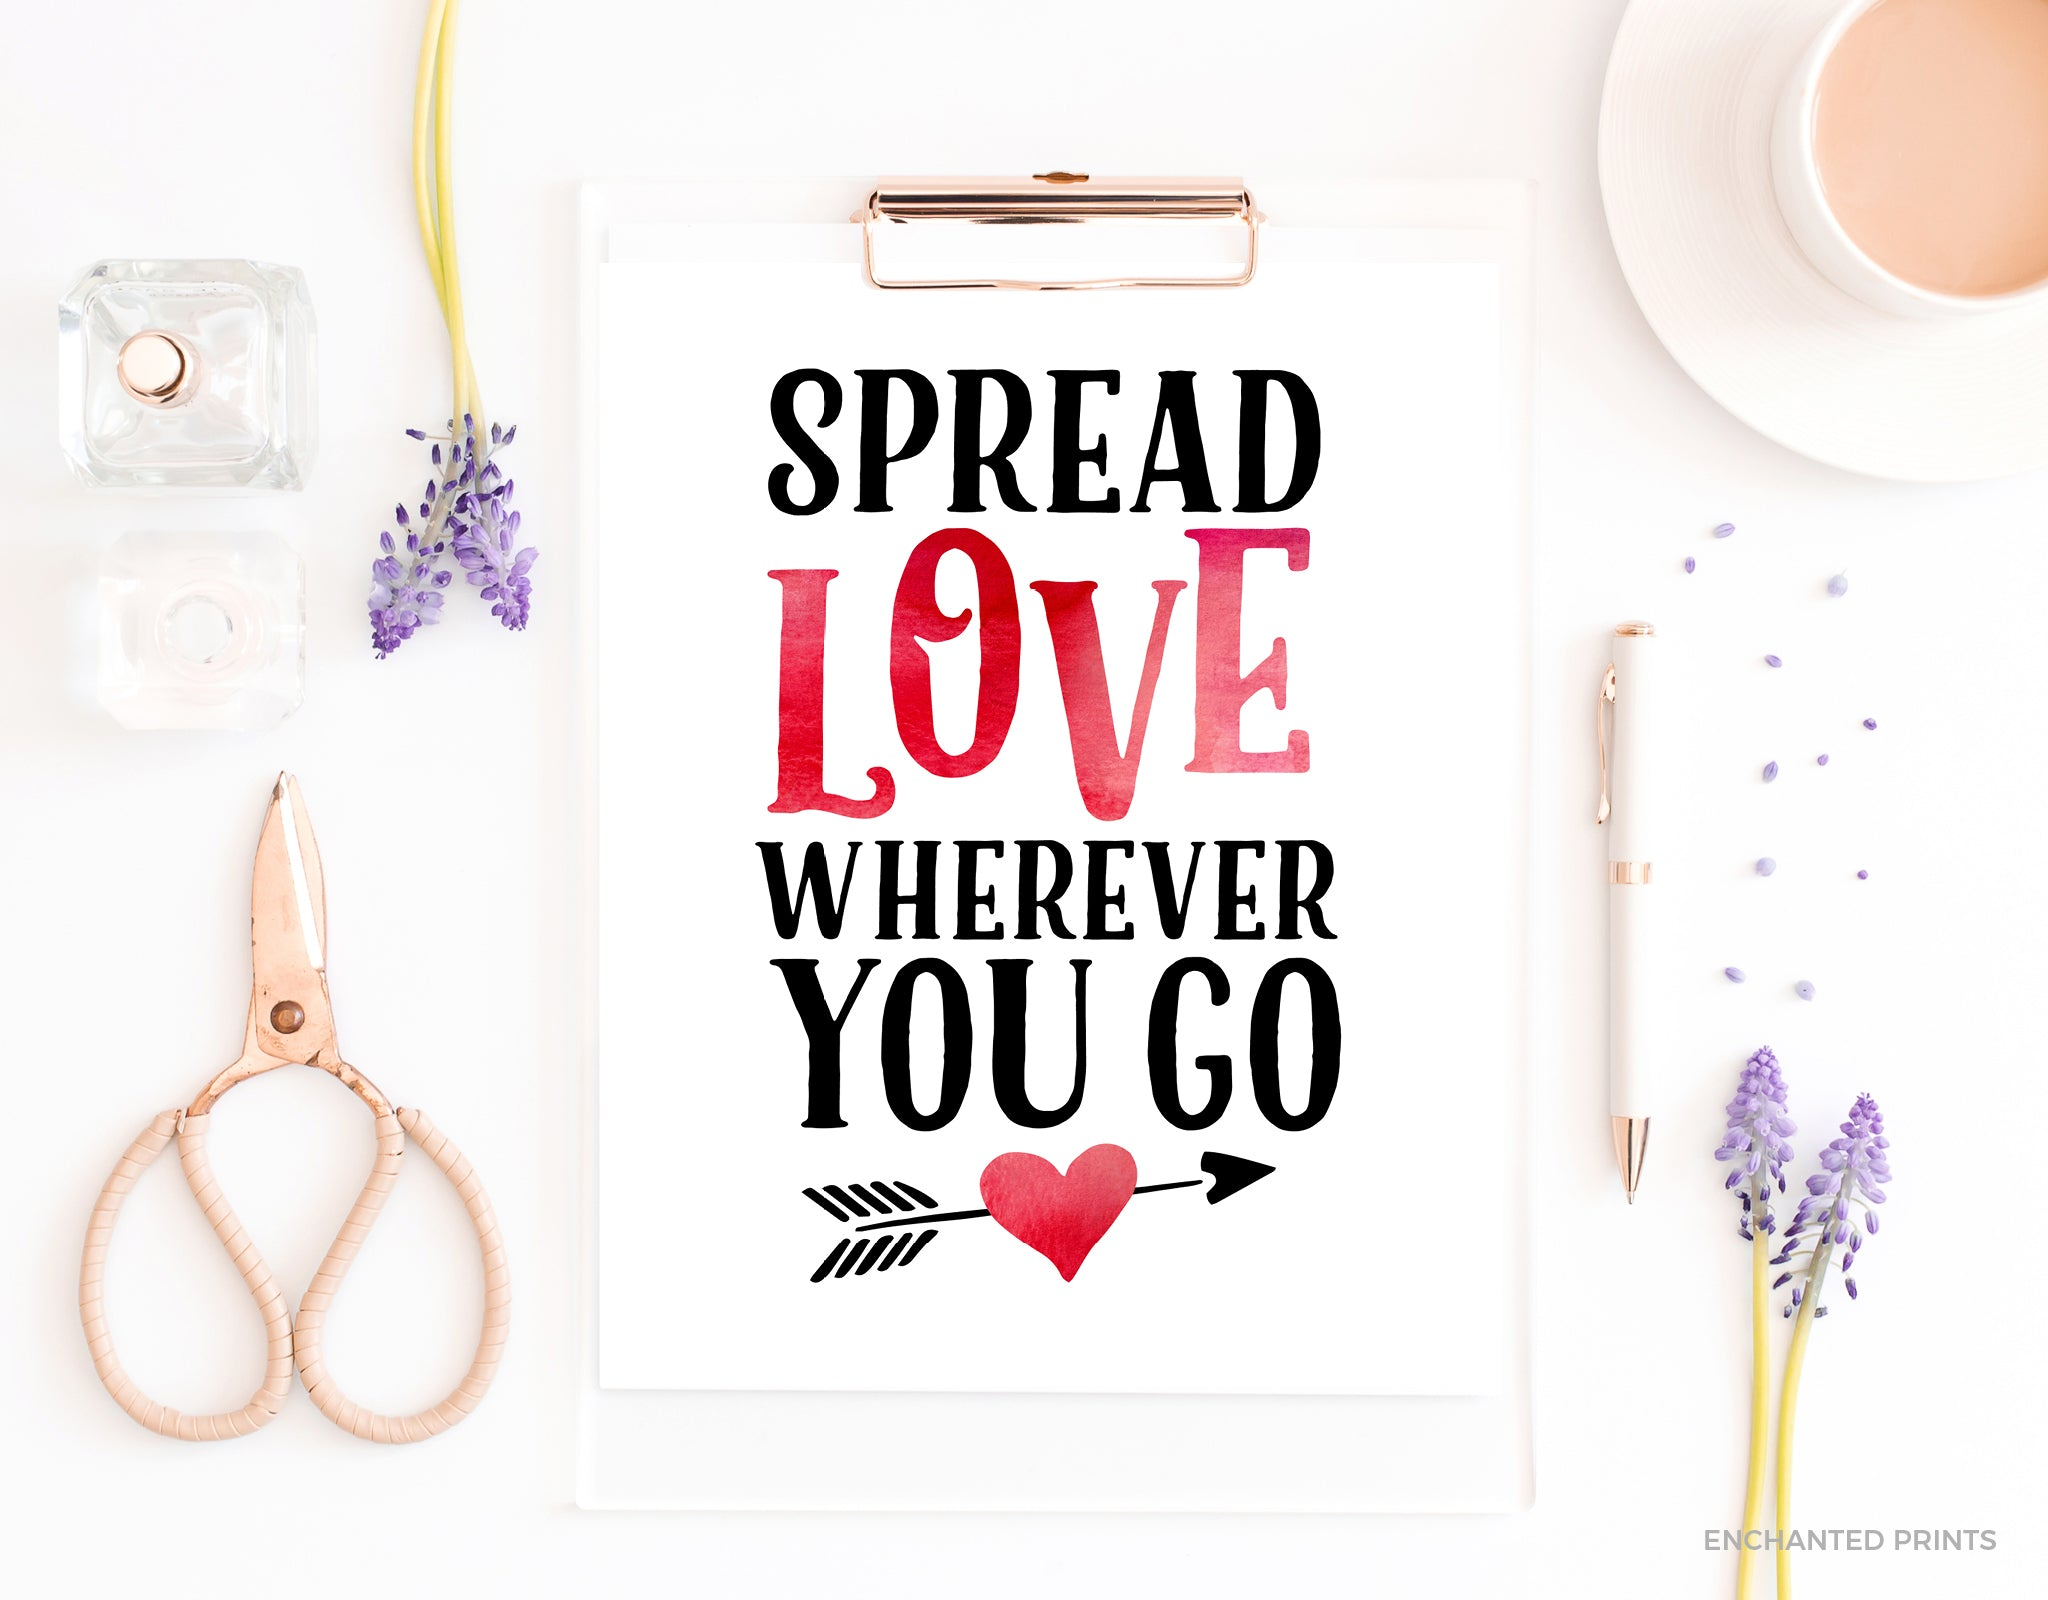 Spread love wherever you go